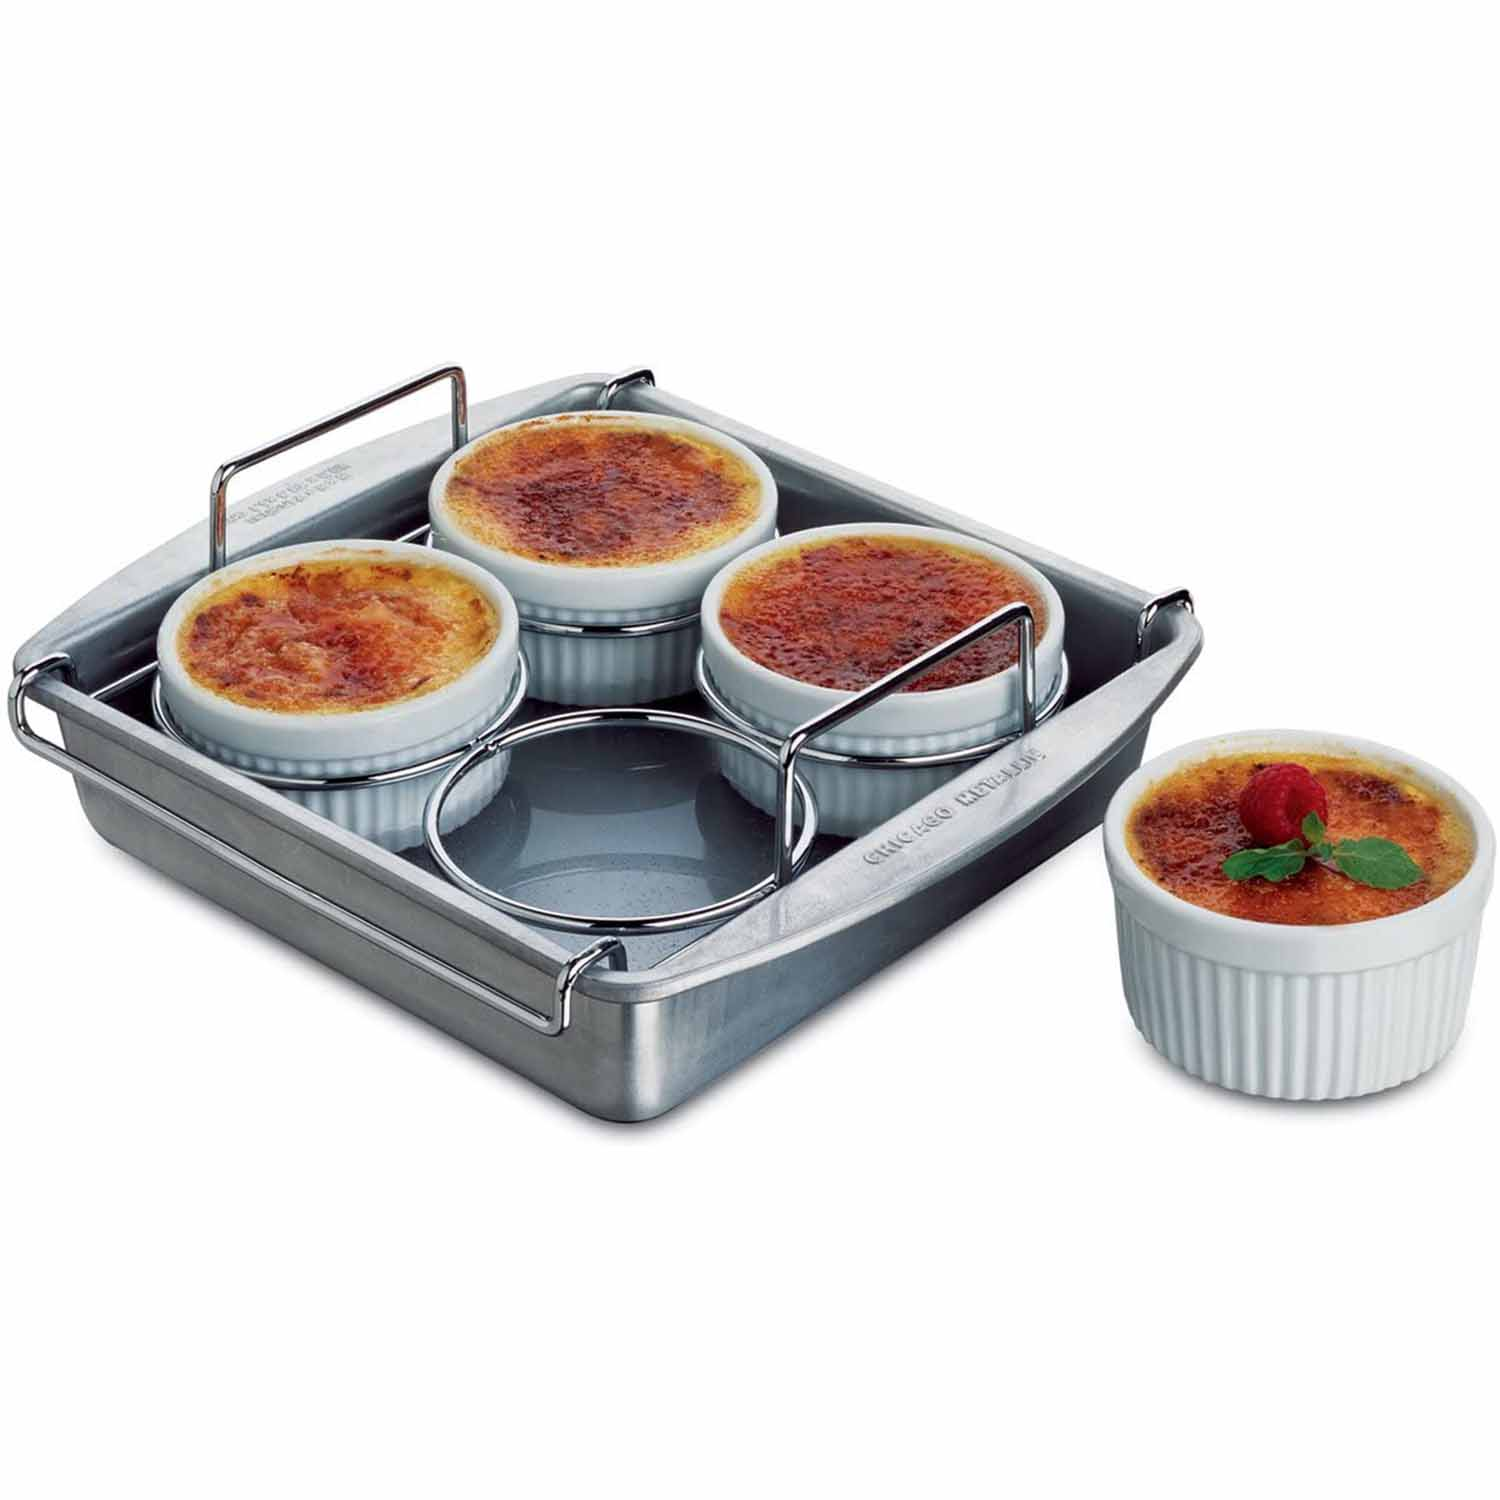 Ramekins and Soufflé Bakeware